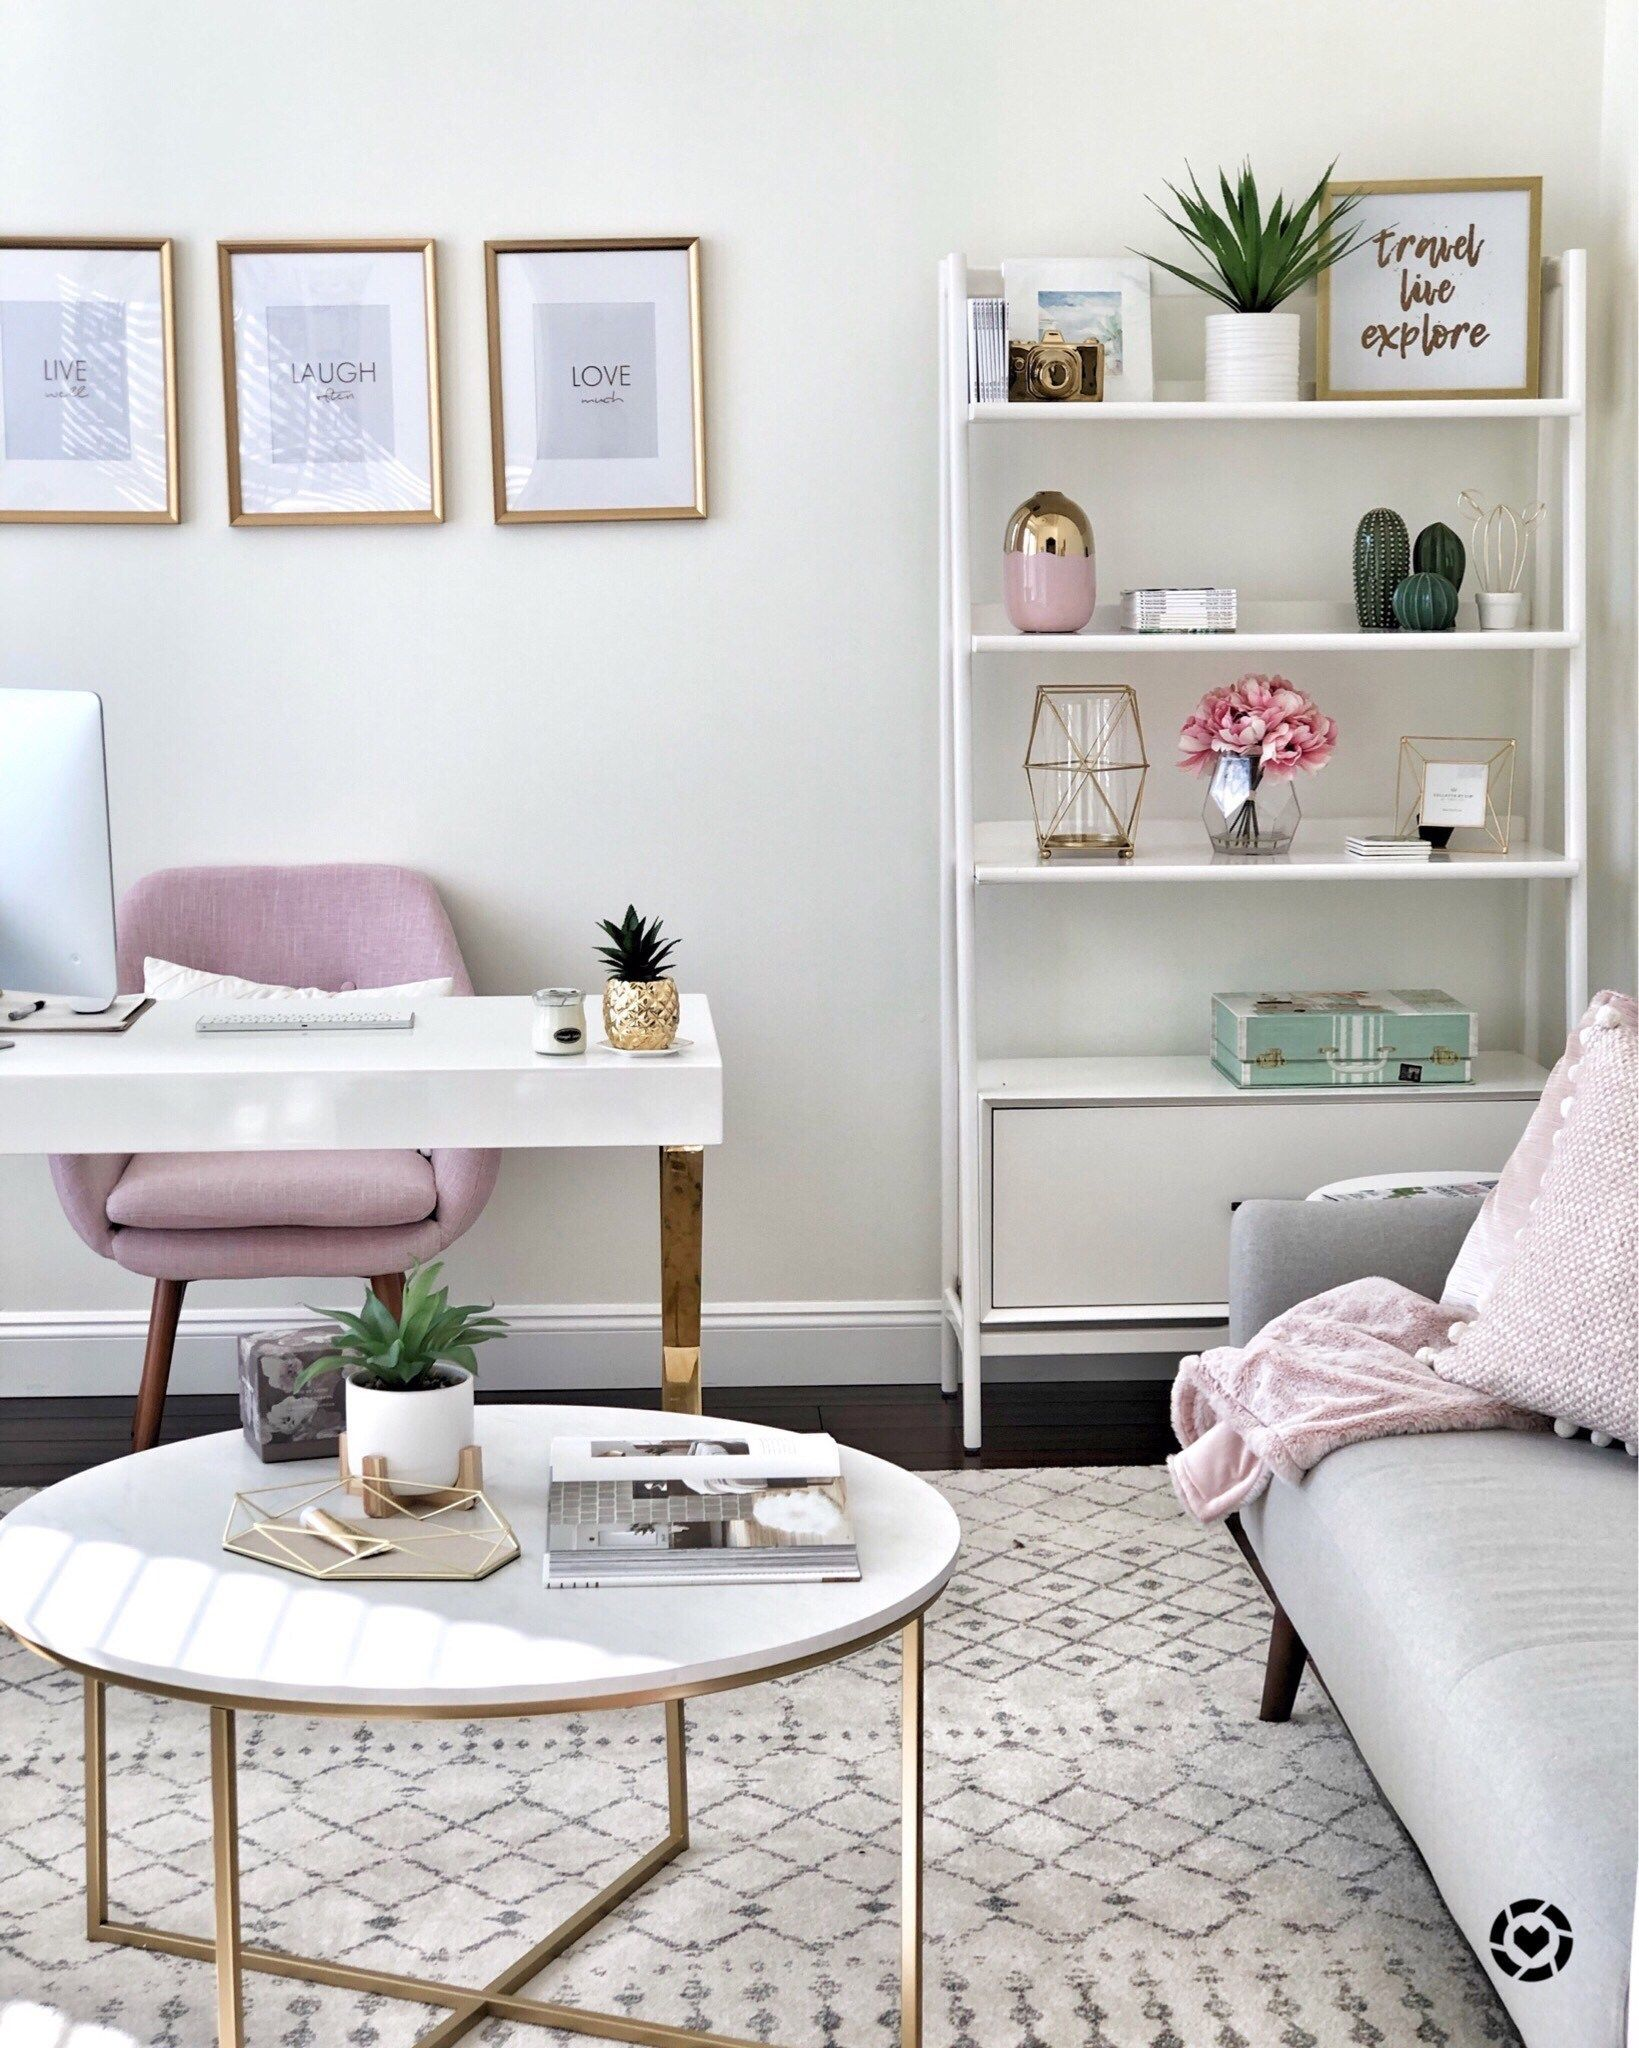 How To Create A Chic And Cozy Home Office Space! • This